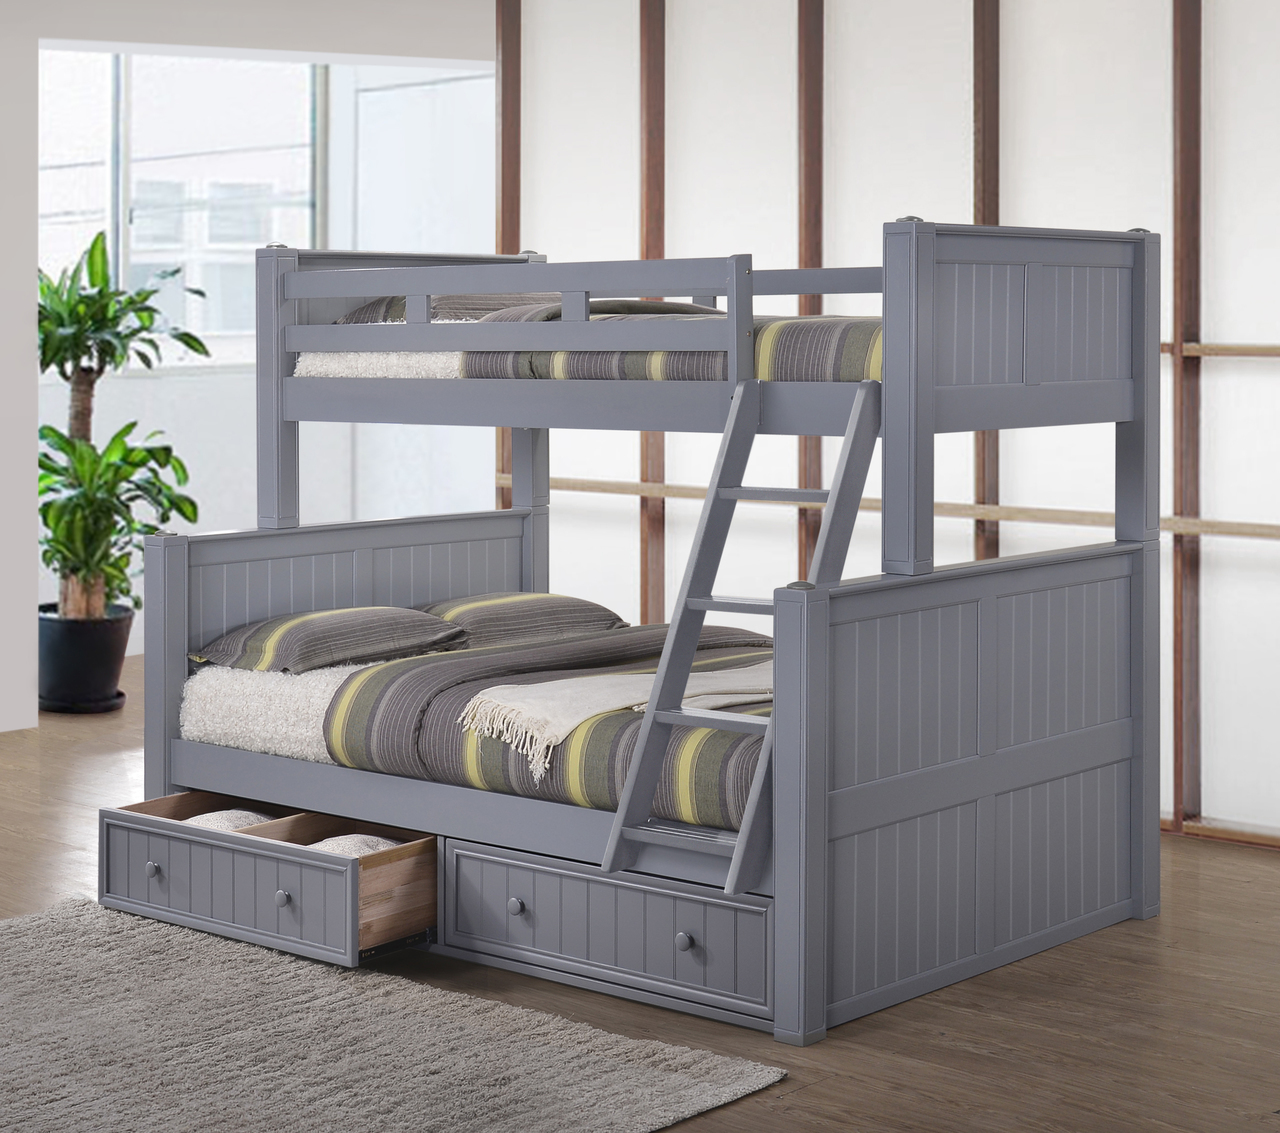 Image of: Full Bunk Bed Ideas